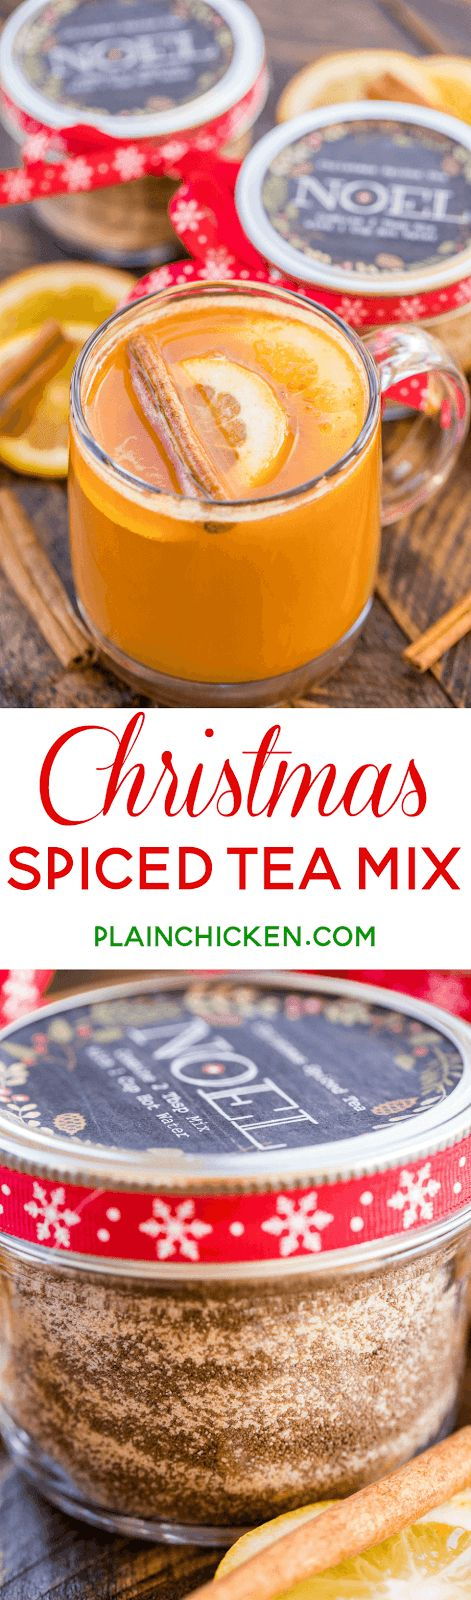 Christmas Spiced Tea Mix - wonderful holiday gift! This stuff tastes like Christmas in a cup - sweet, citrusy and spicy. We LOVE this stuff. If you want to kick it up, add a shot of fireball whiskey. Perfect holiday hot toddy! Tang, Lemonade mix, iced tea mix, sugar and pumpkin pie spice. So easy and it tastes terrific! A MUST for your holiday!!! #spicedtea #homemadegift #christmas